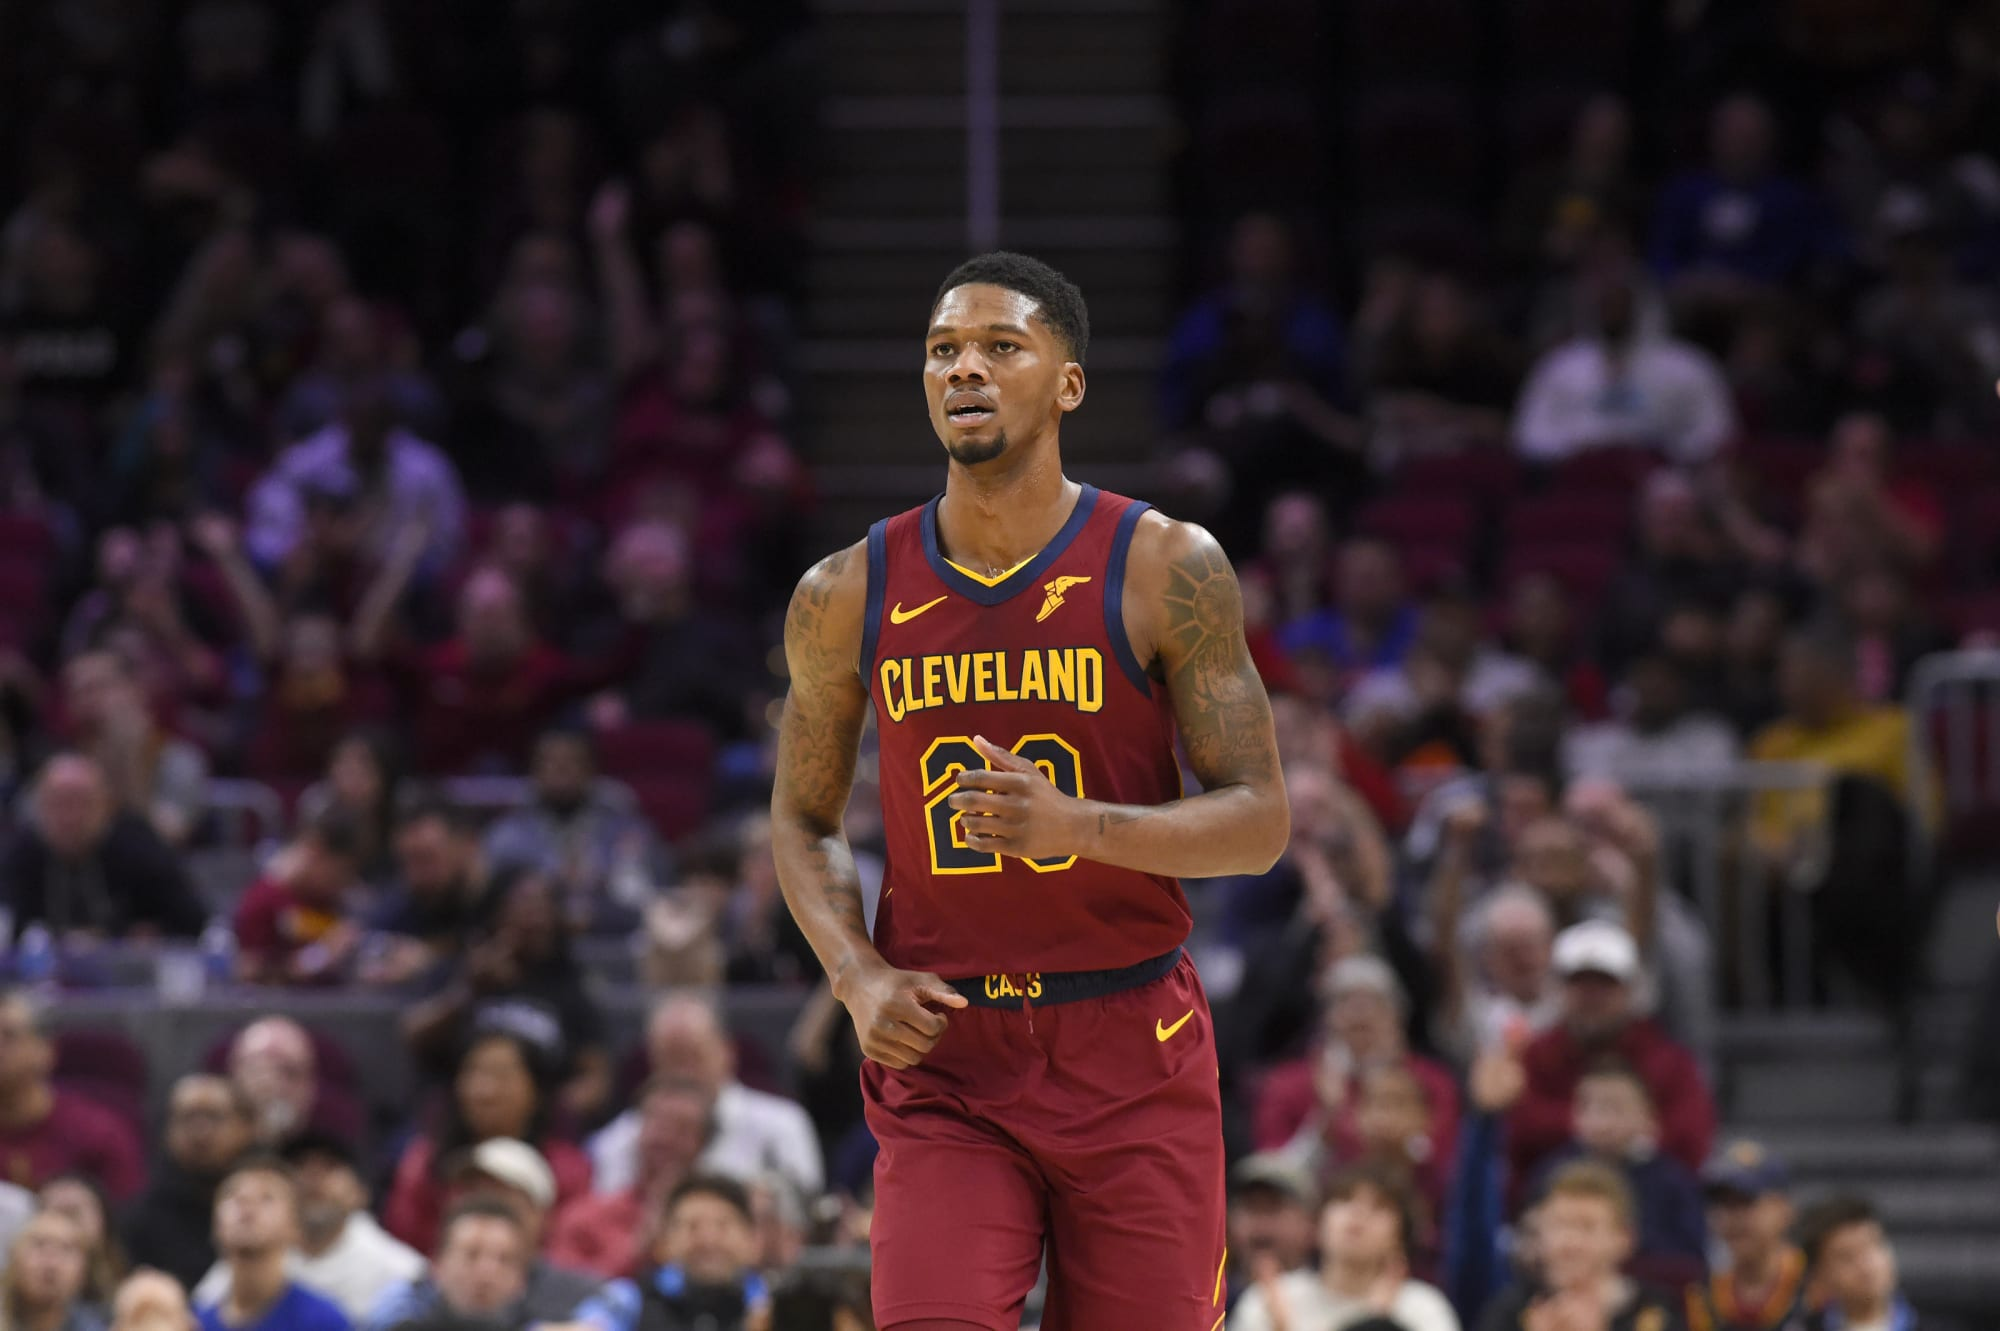 Alfonzo McKinnie could play more at 4 next season when he's in for Cavs